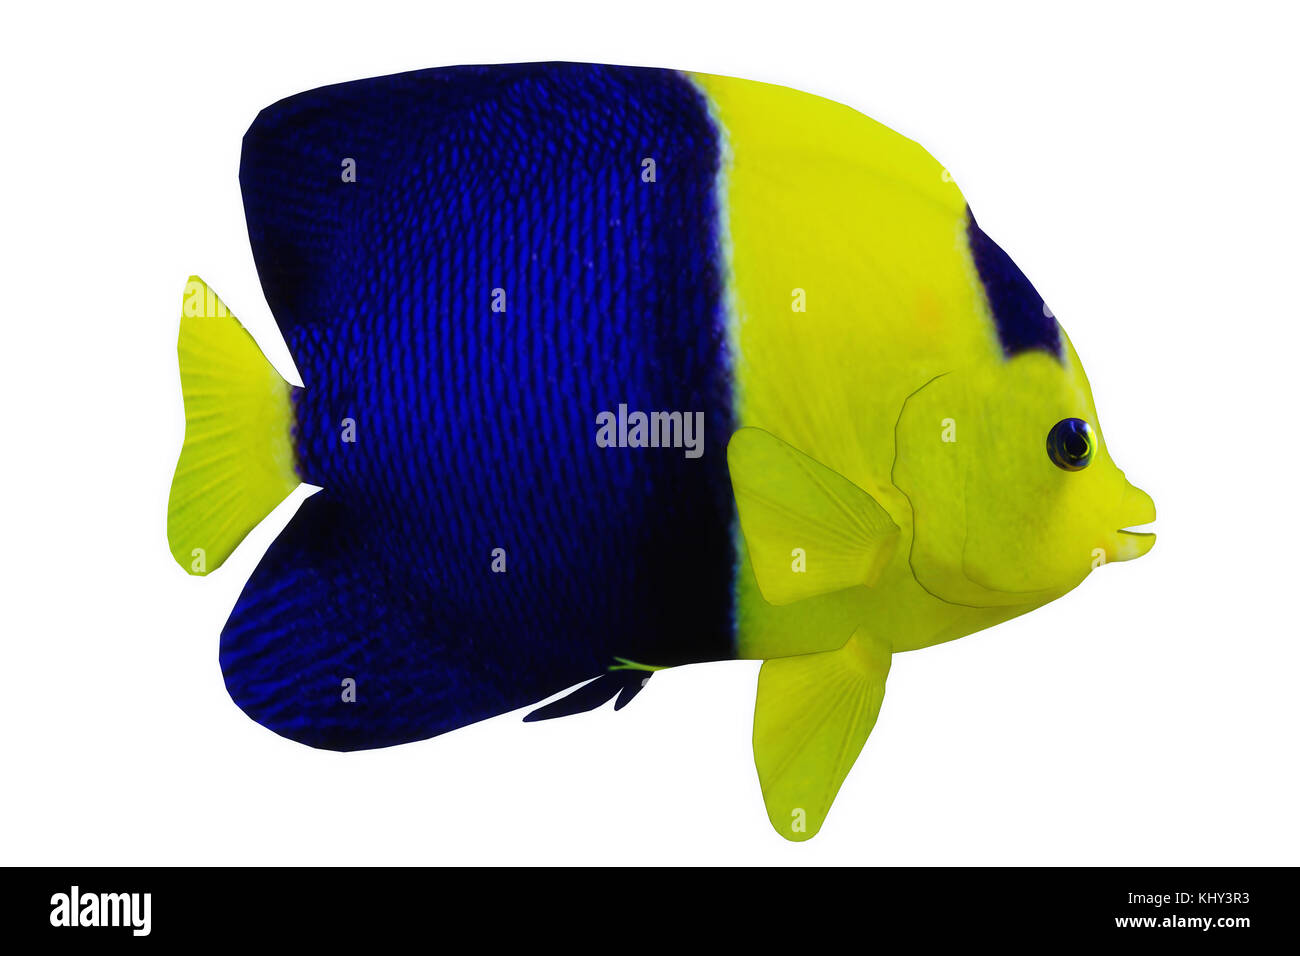 Bicolor Angelfish - The Bicolor Angelfish is a saltwater species reef fish in tropical regions of major oceans. - Stock Image